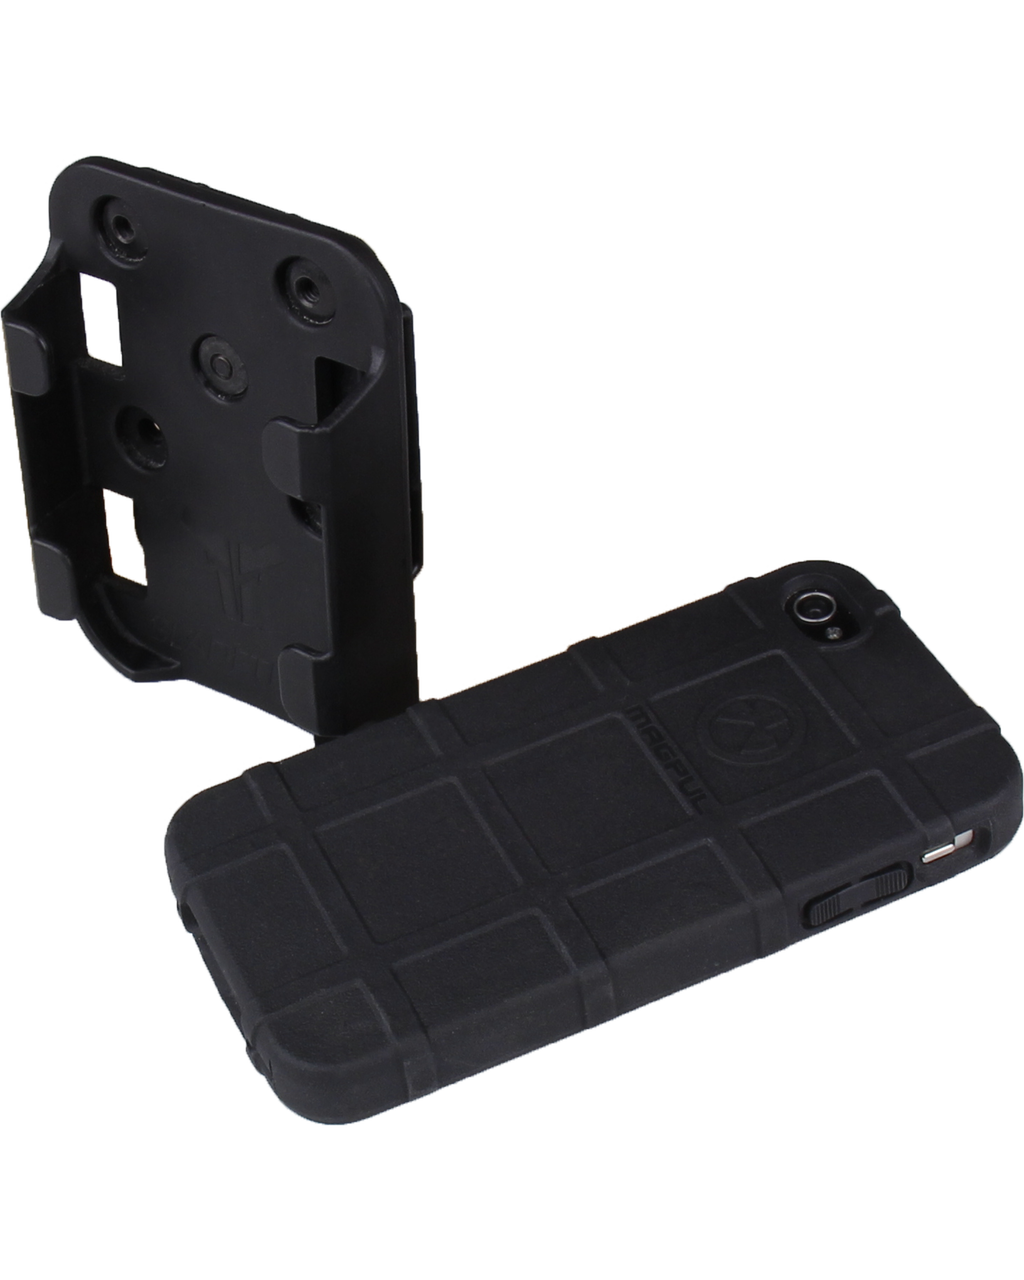 Tech clip blade. Iphone holster free shipping